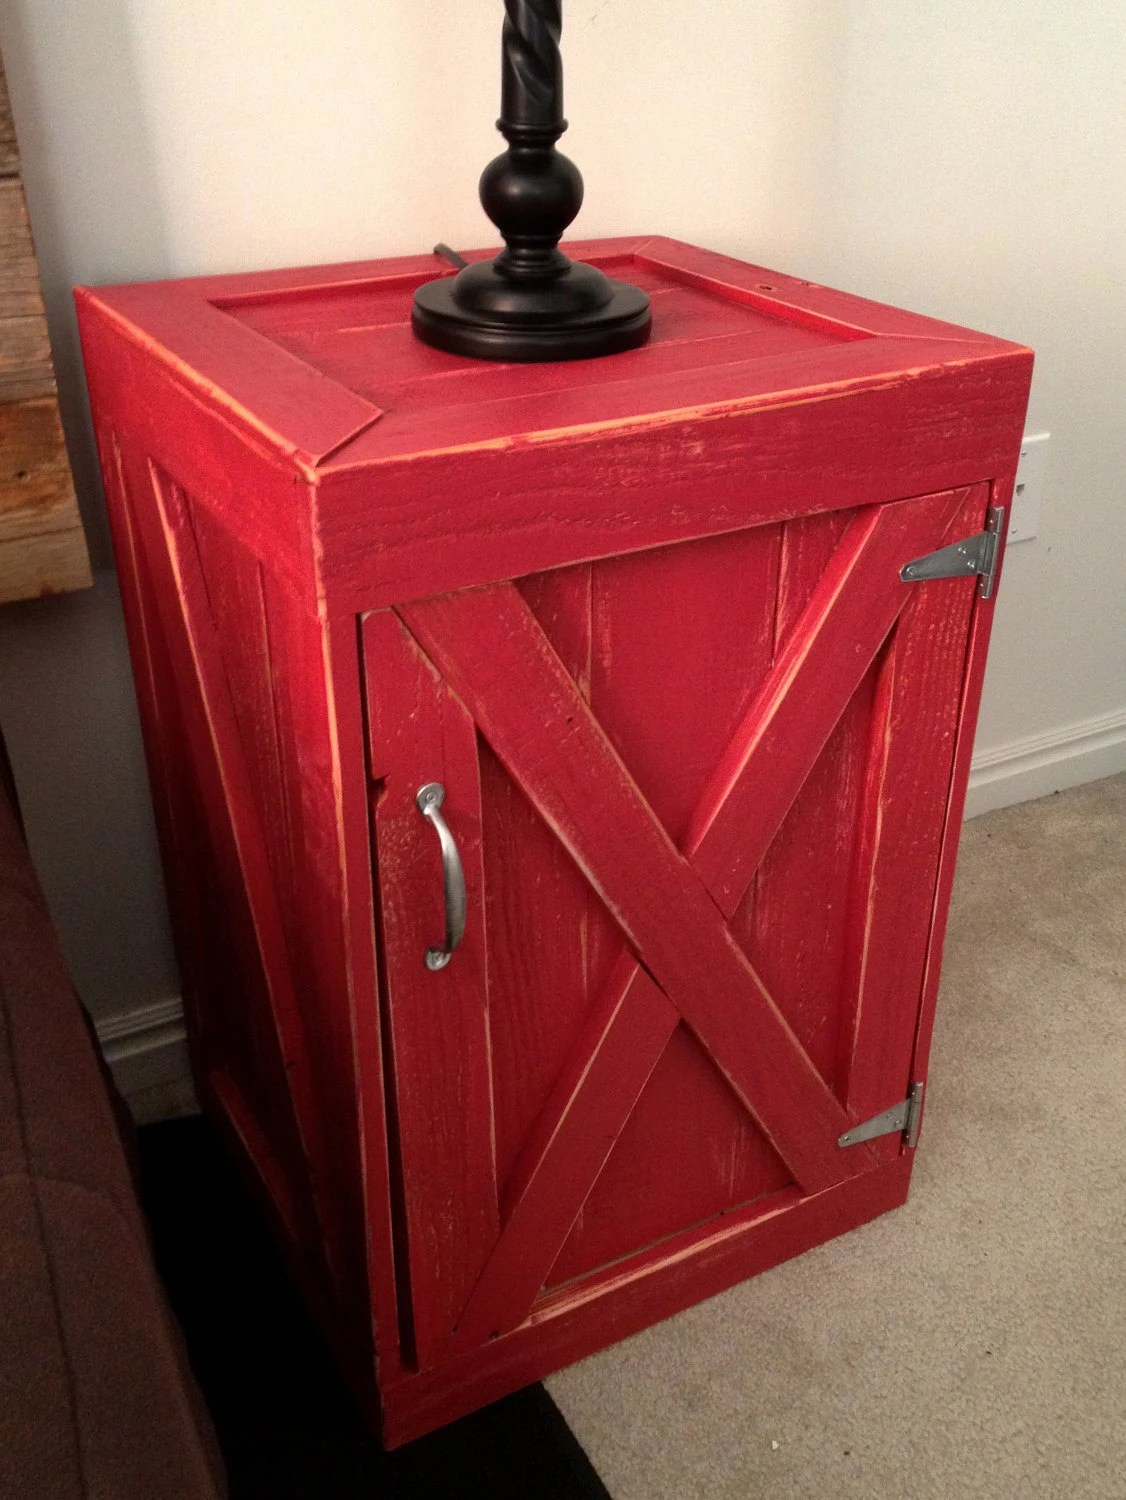 Blowout 1 Day Sale April 6 Barn Red Crate By Crateandpallet